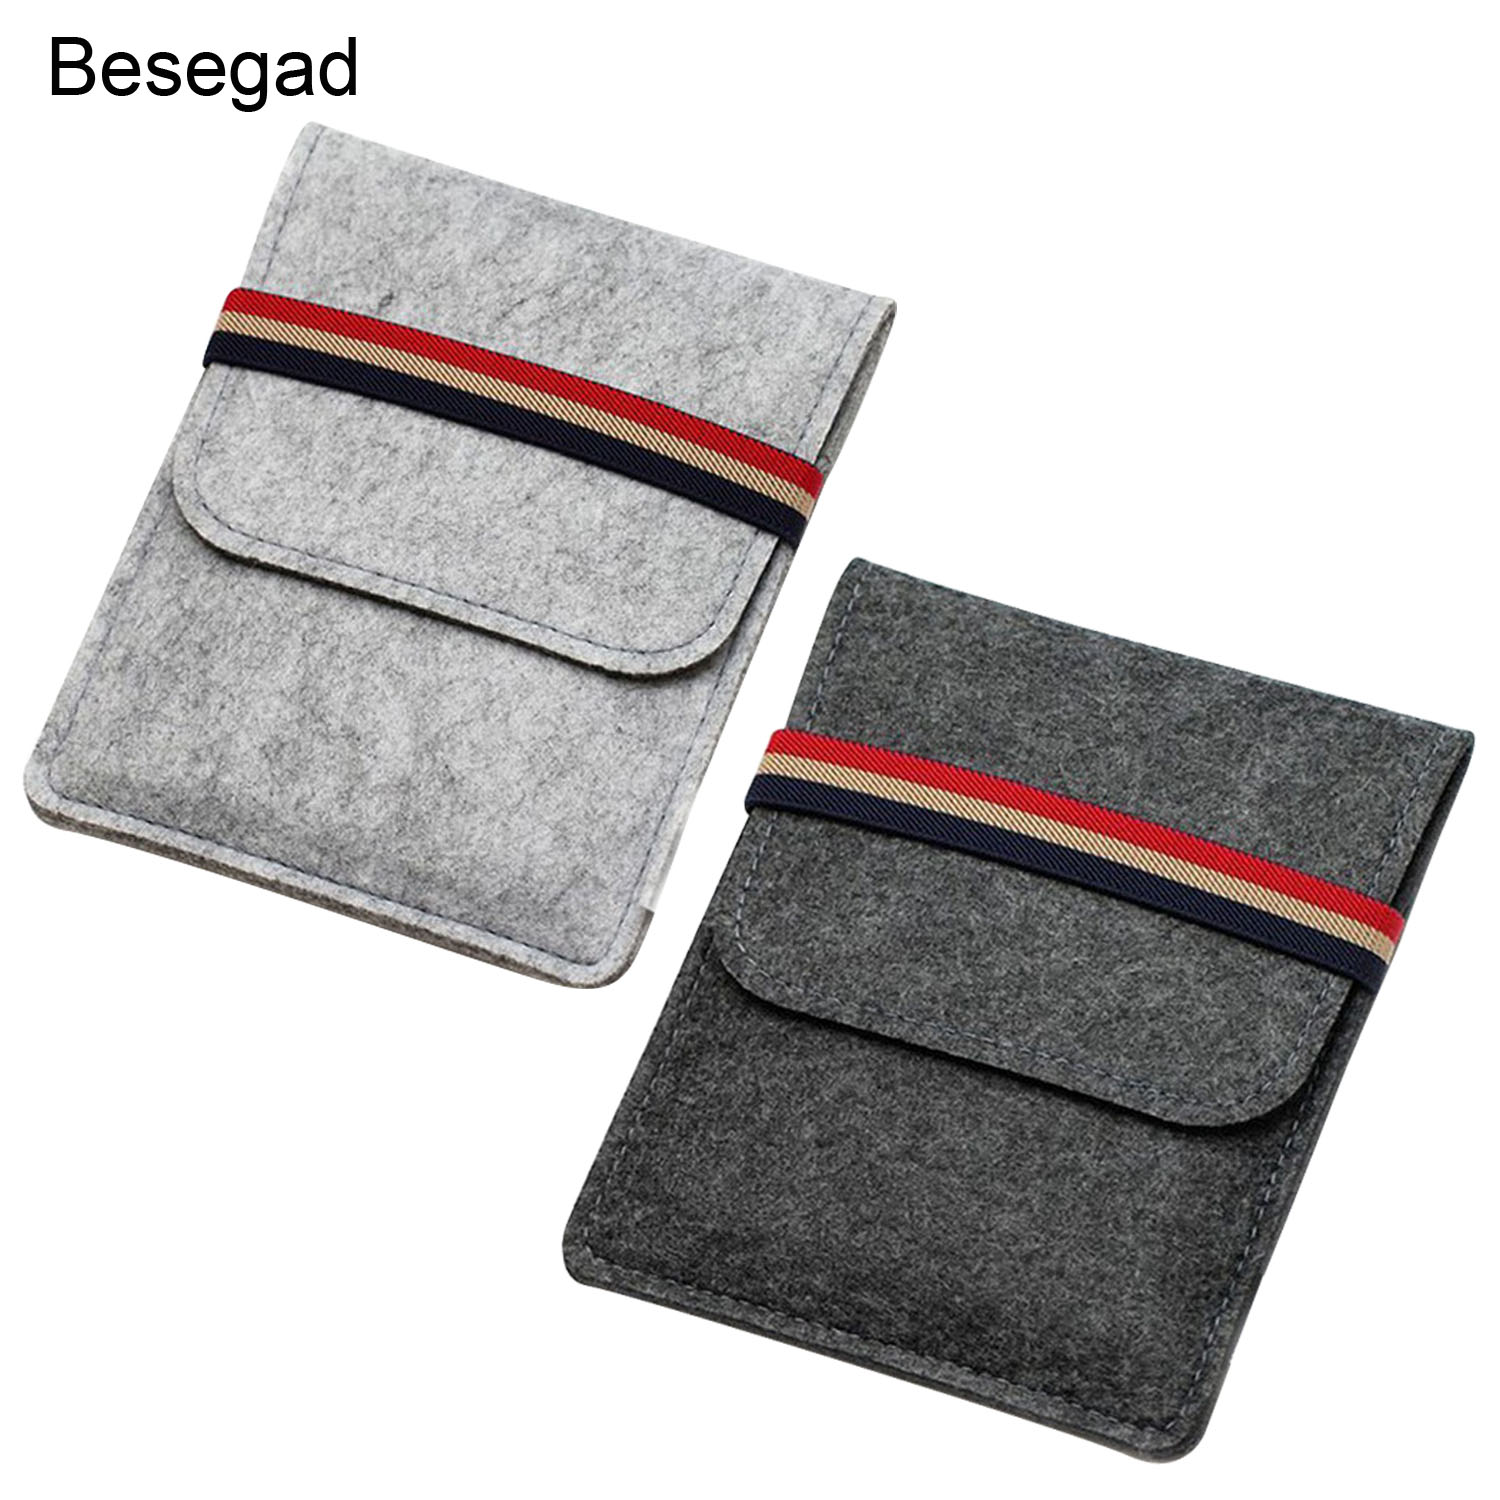 Besegad Felt Tablet Protective Case Bag Pouch Cover Sleeve for Amazon Kindle Voyage Paperwhite 1 2 3 6inch E-Book Reader Gadgets